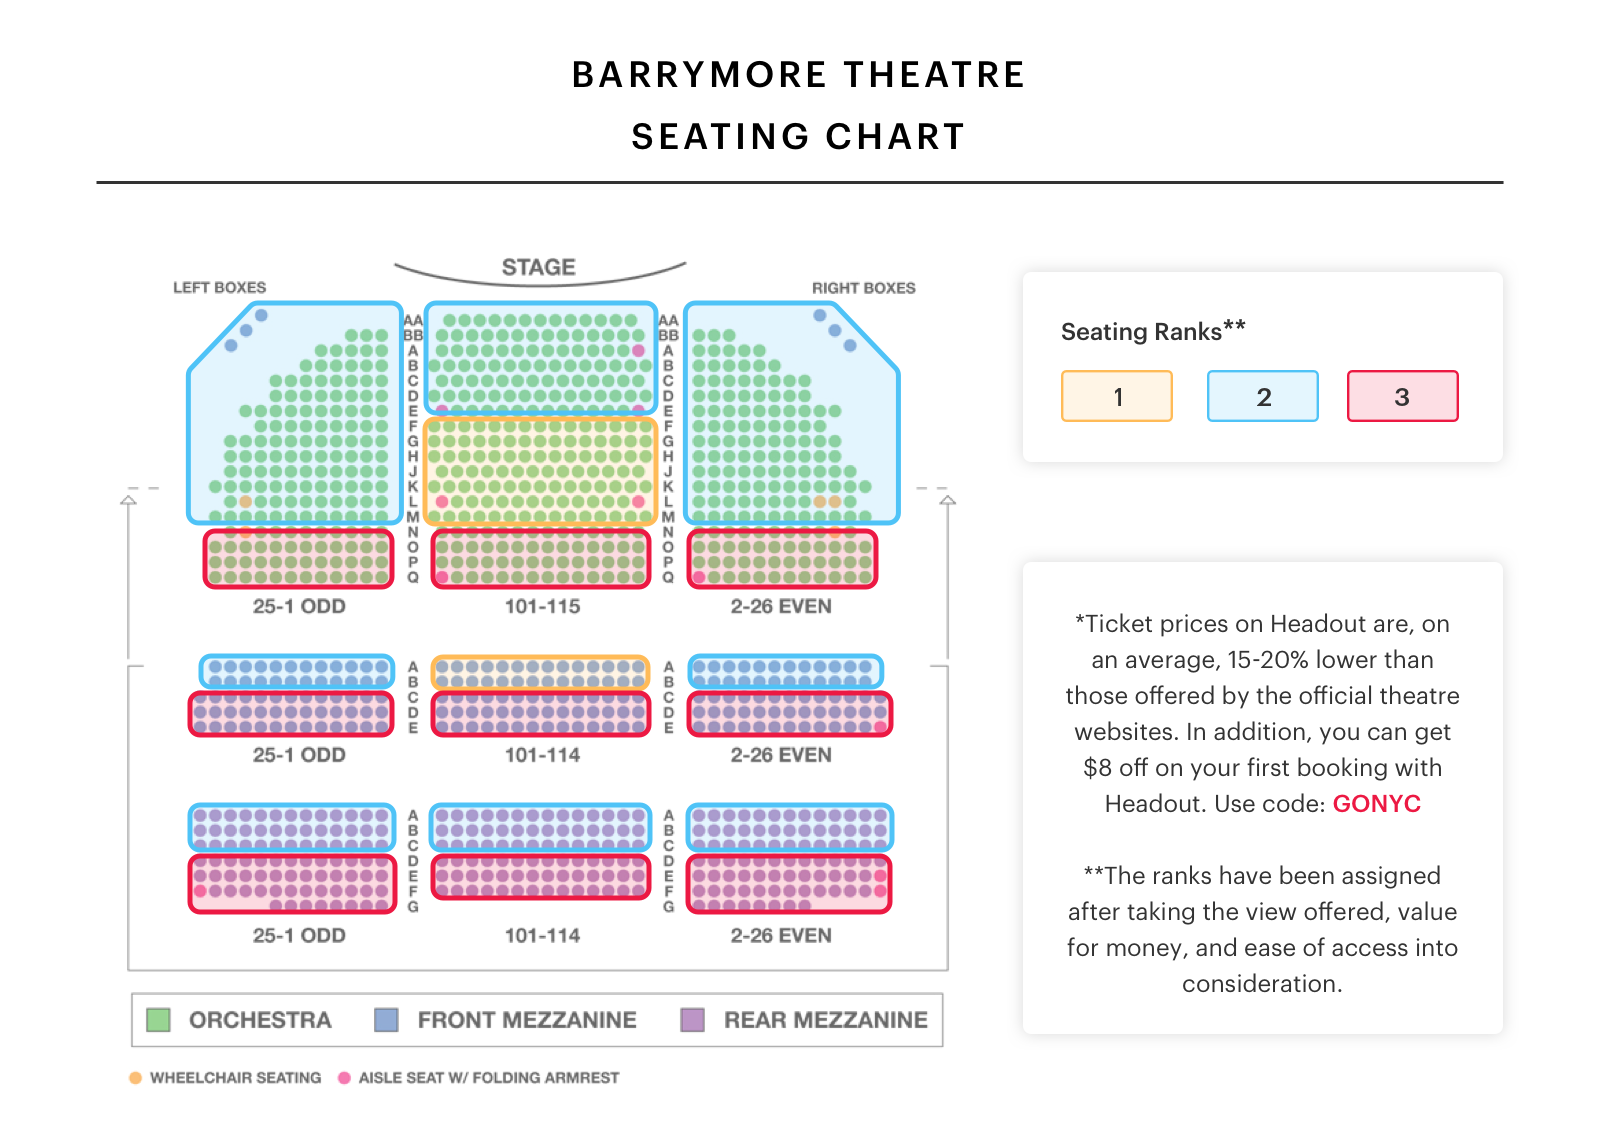 Winter Garden Theatre Seating Chart New York Garden Ftempo